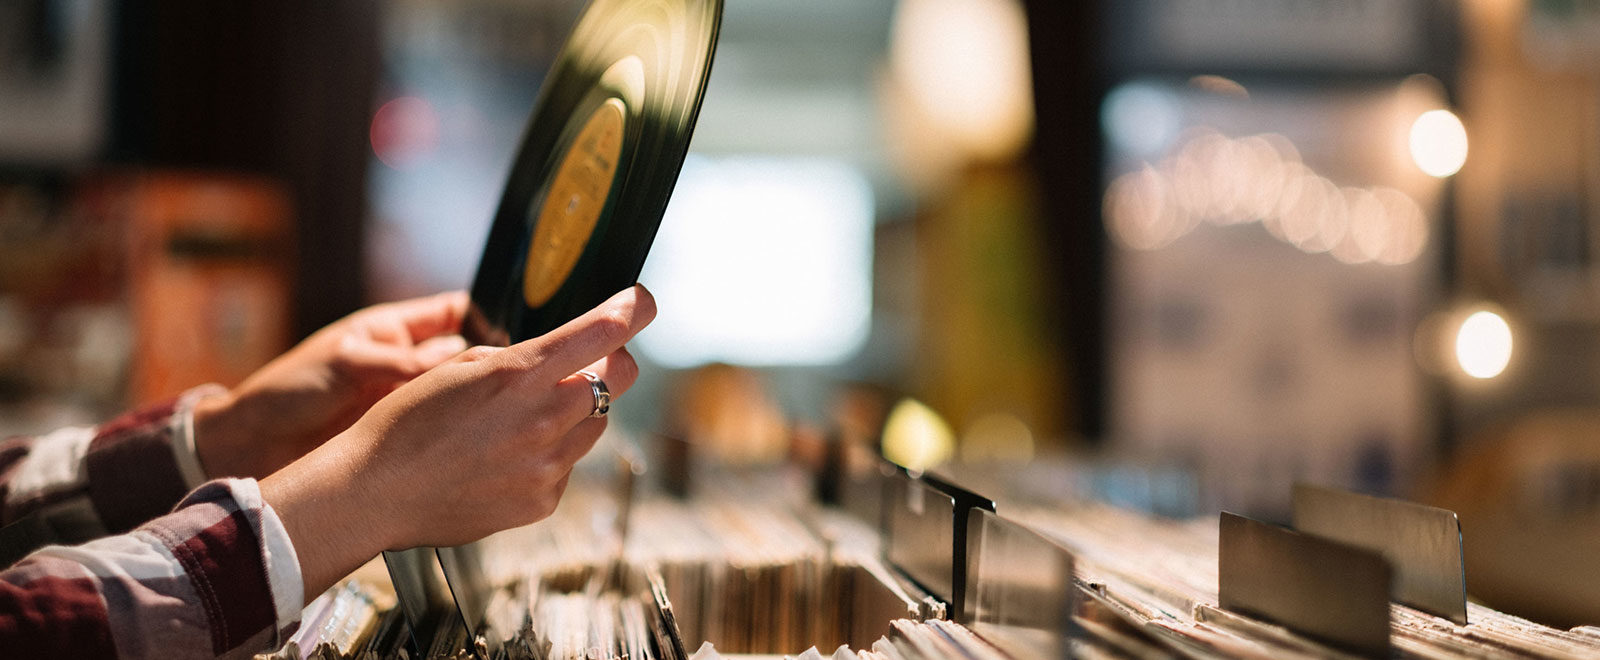 VINYL DJ JONATHAN TOUBIN'S GUIDE TO RECORD SHOPPING IN NYC